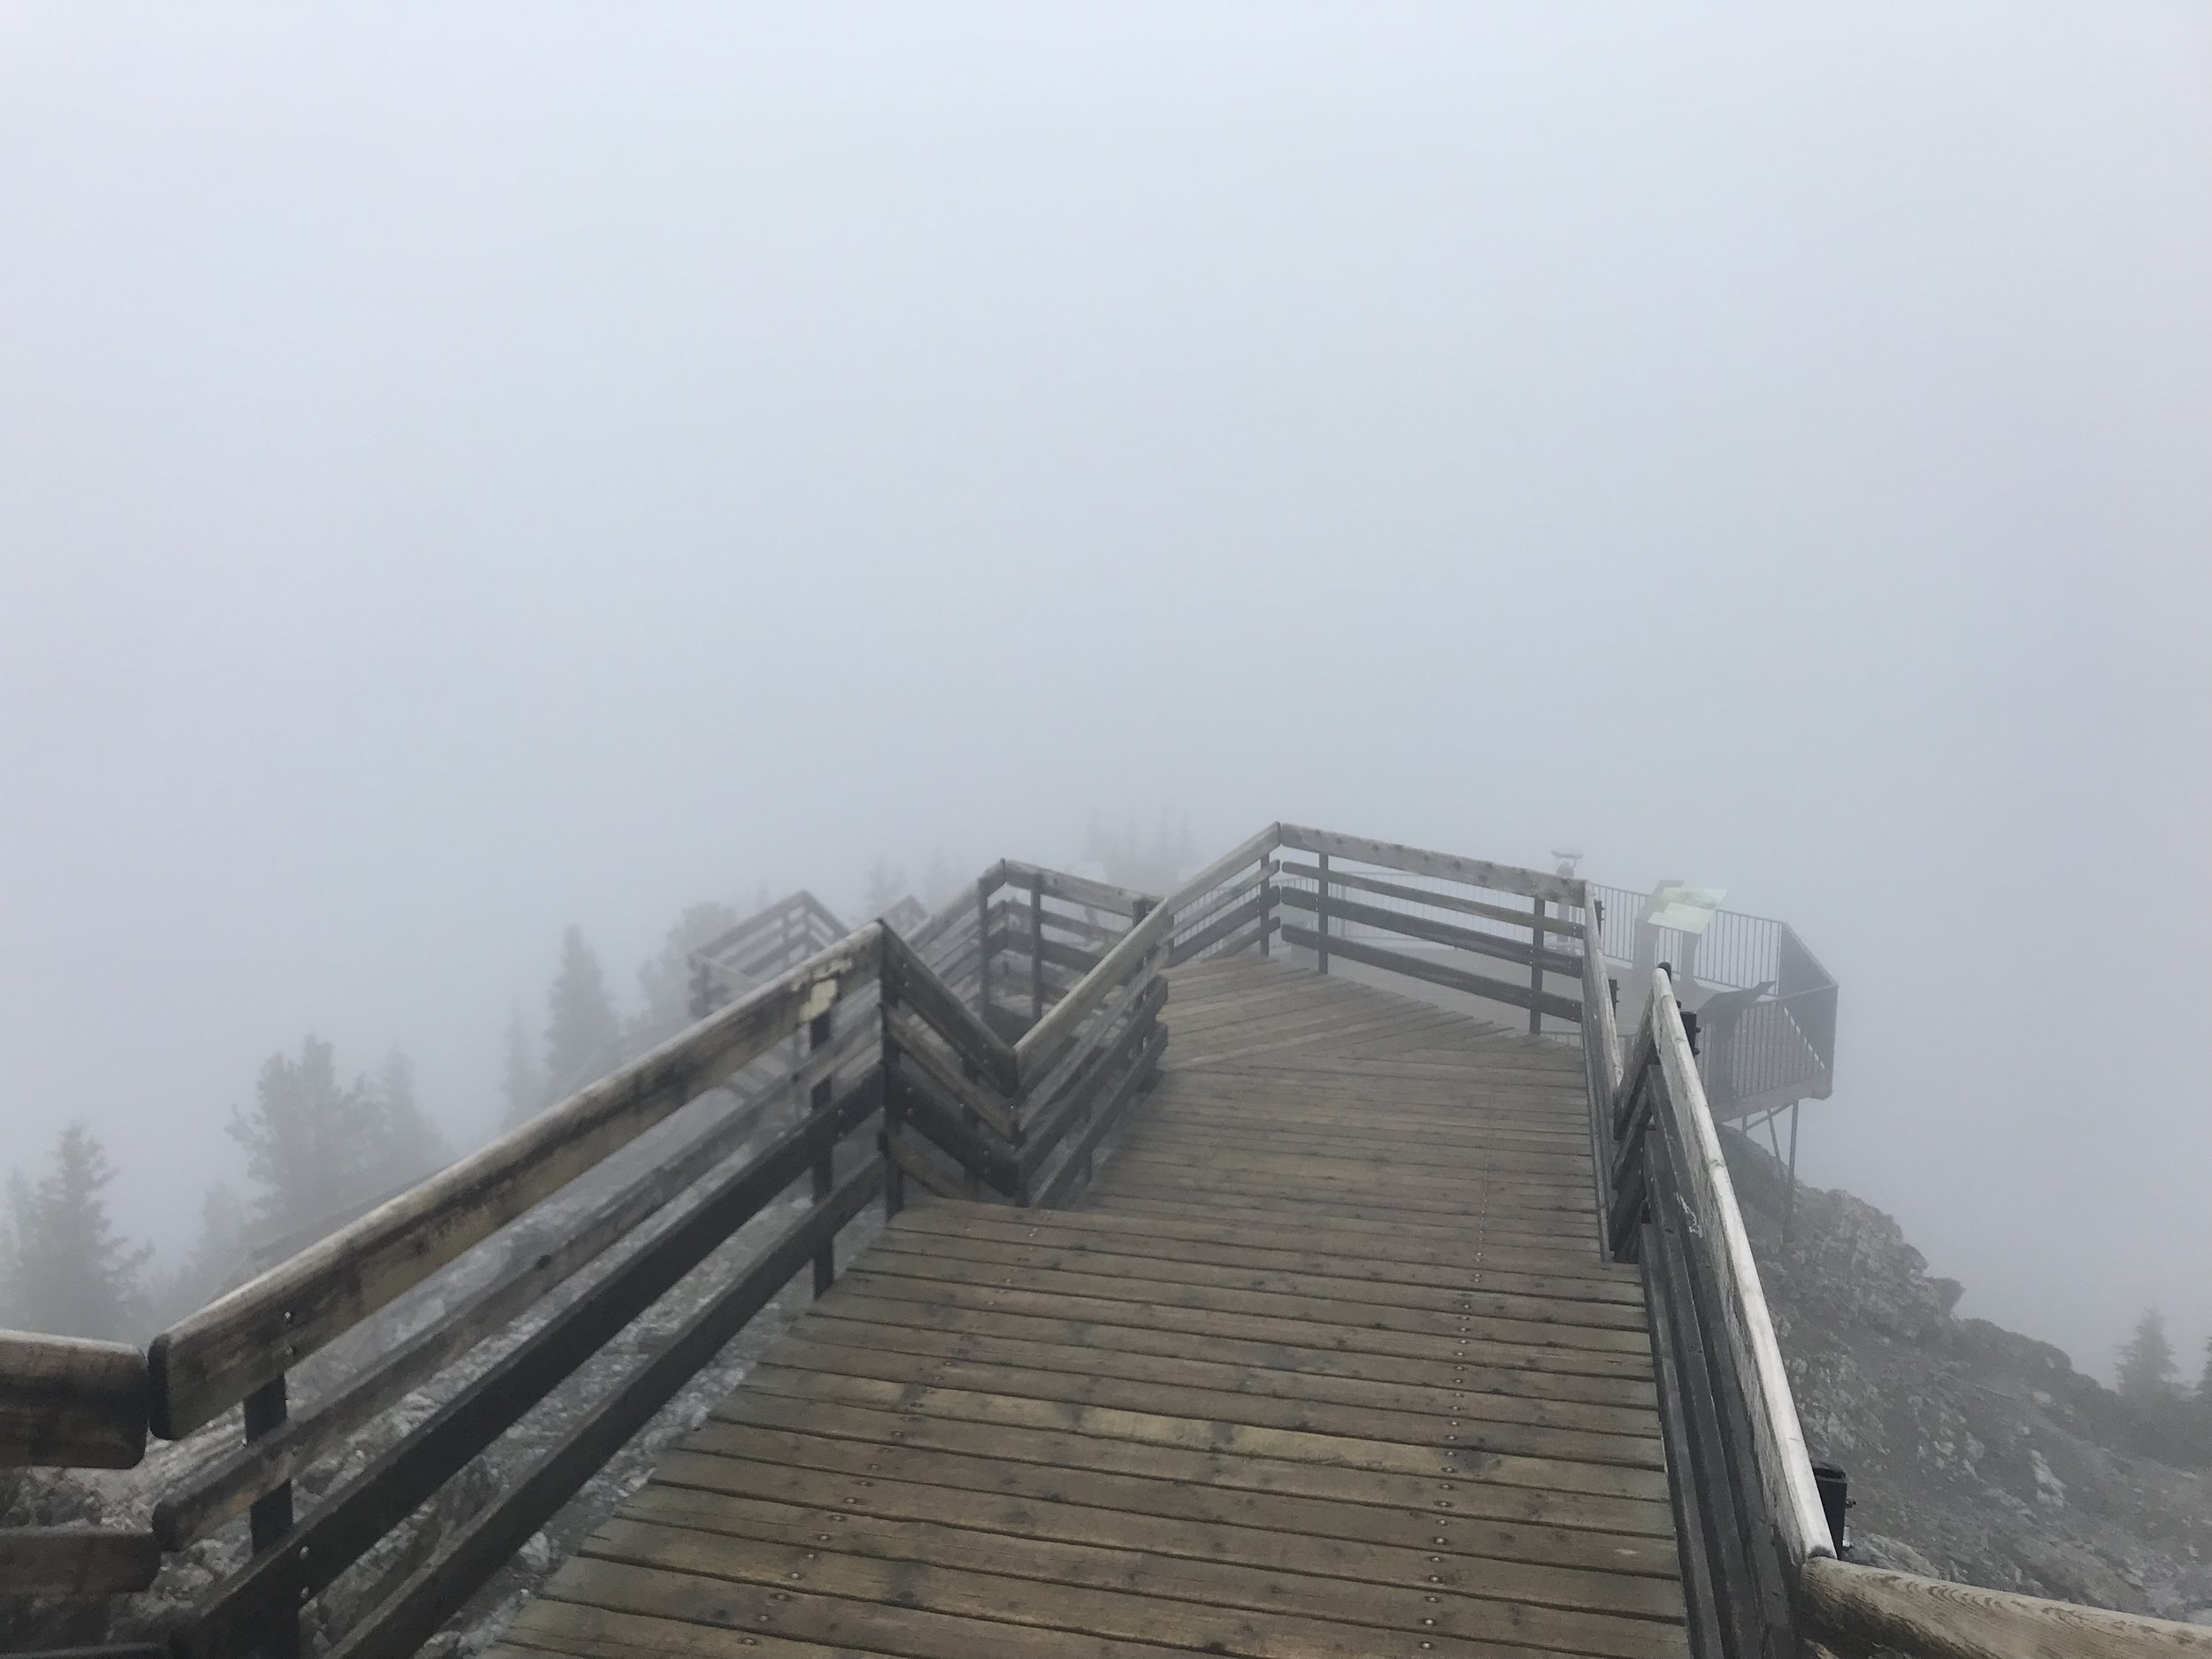 Boardwalking in the clouds